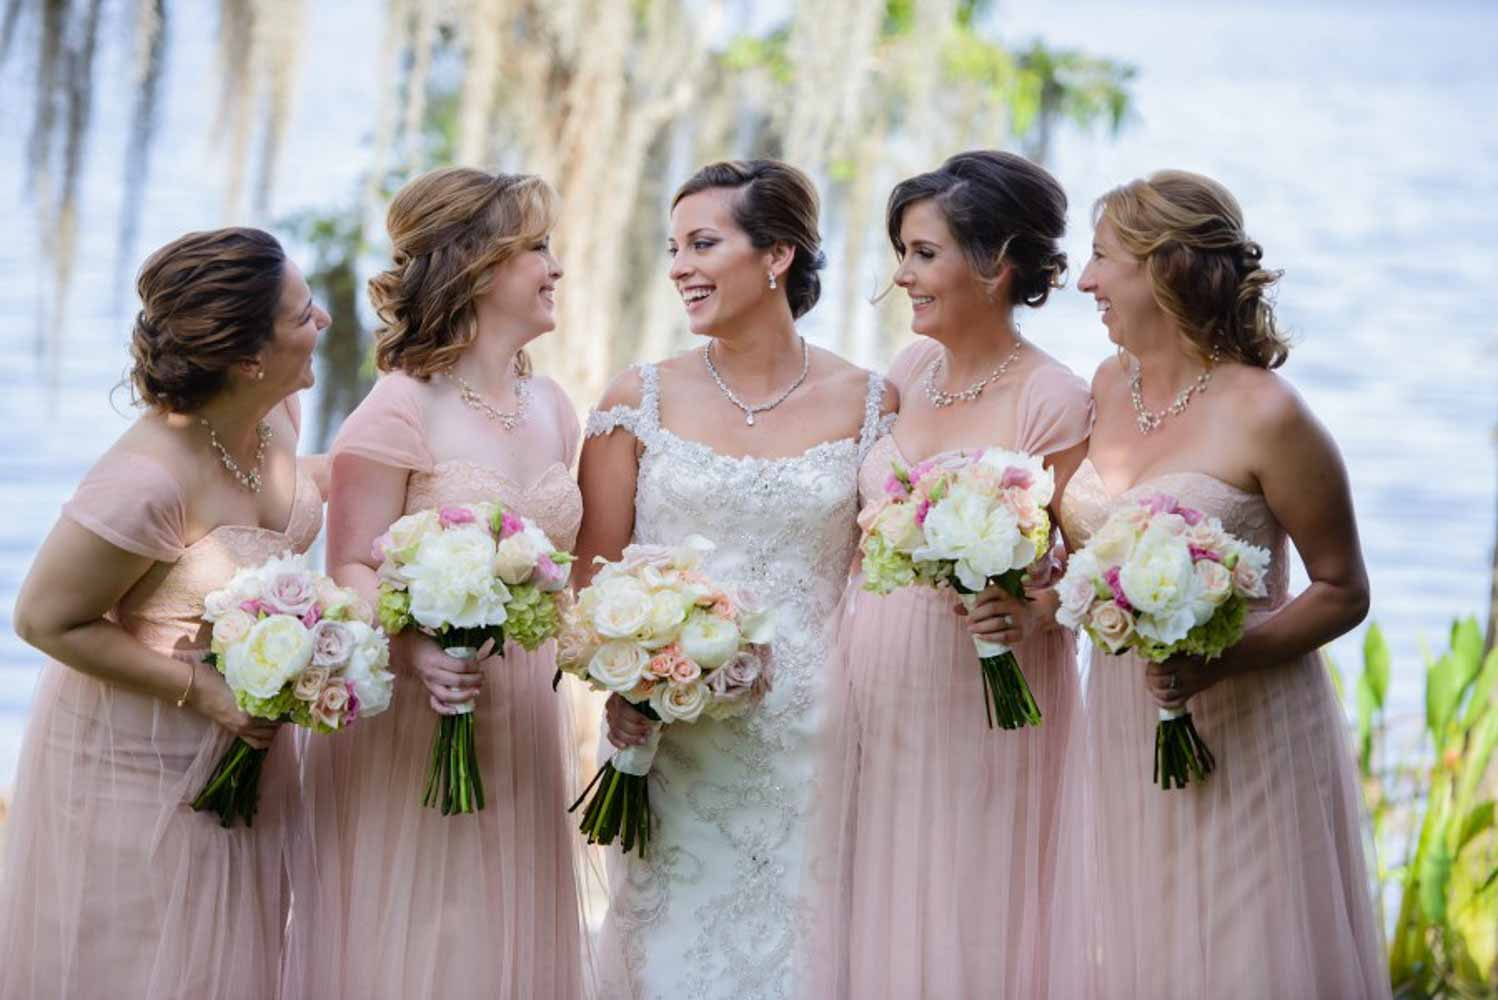 bride smiling with bridesmaids in blush dresses and holding bouquets